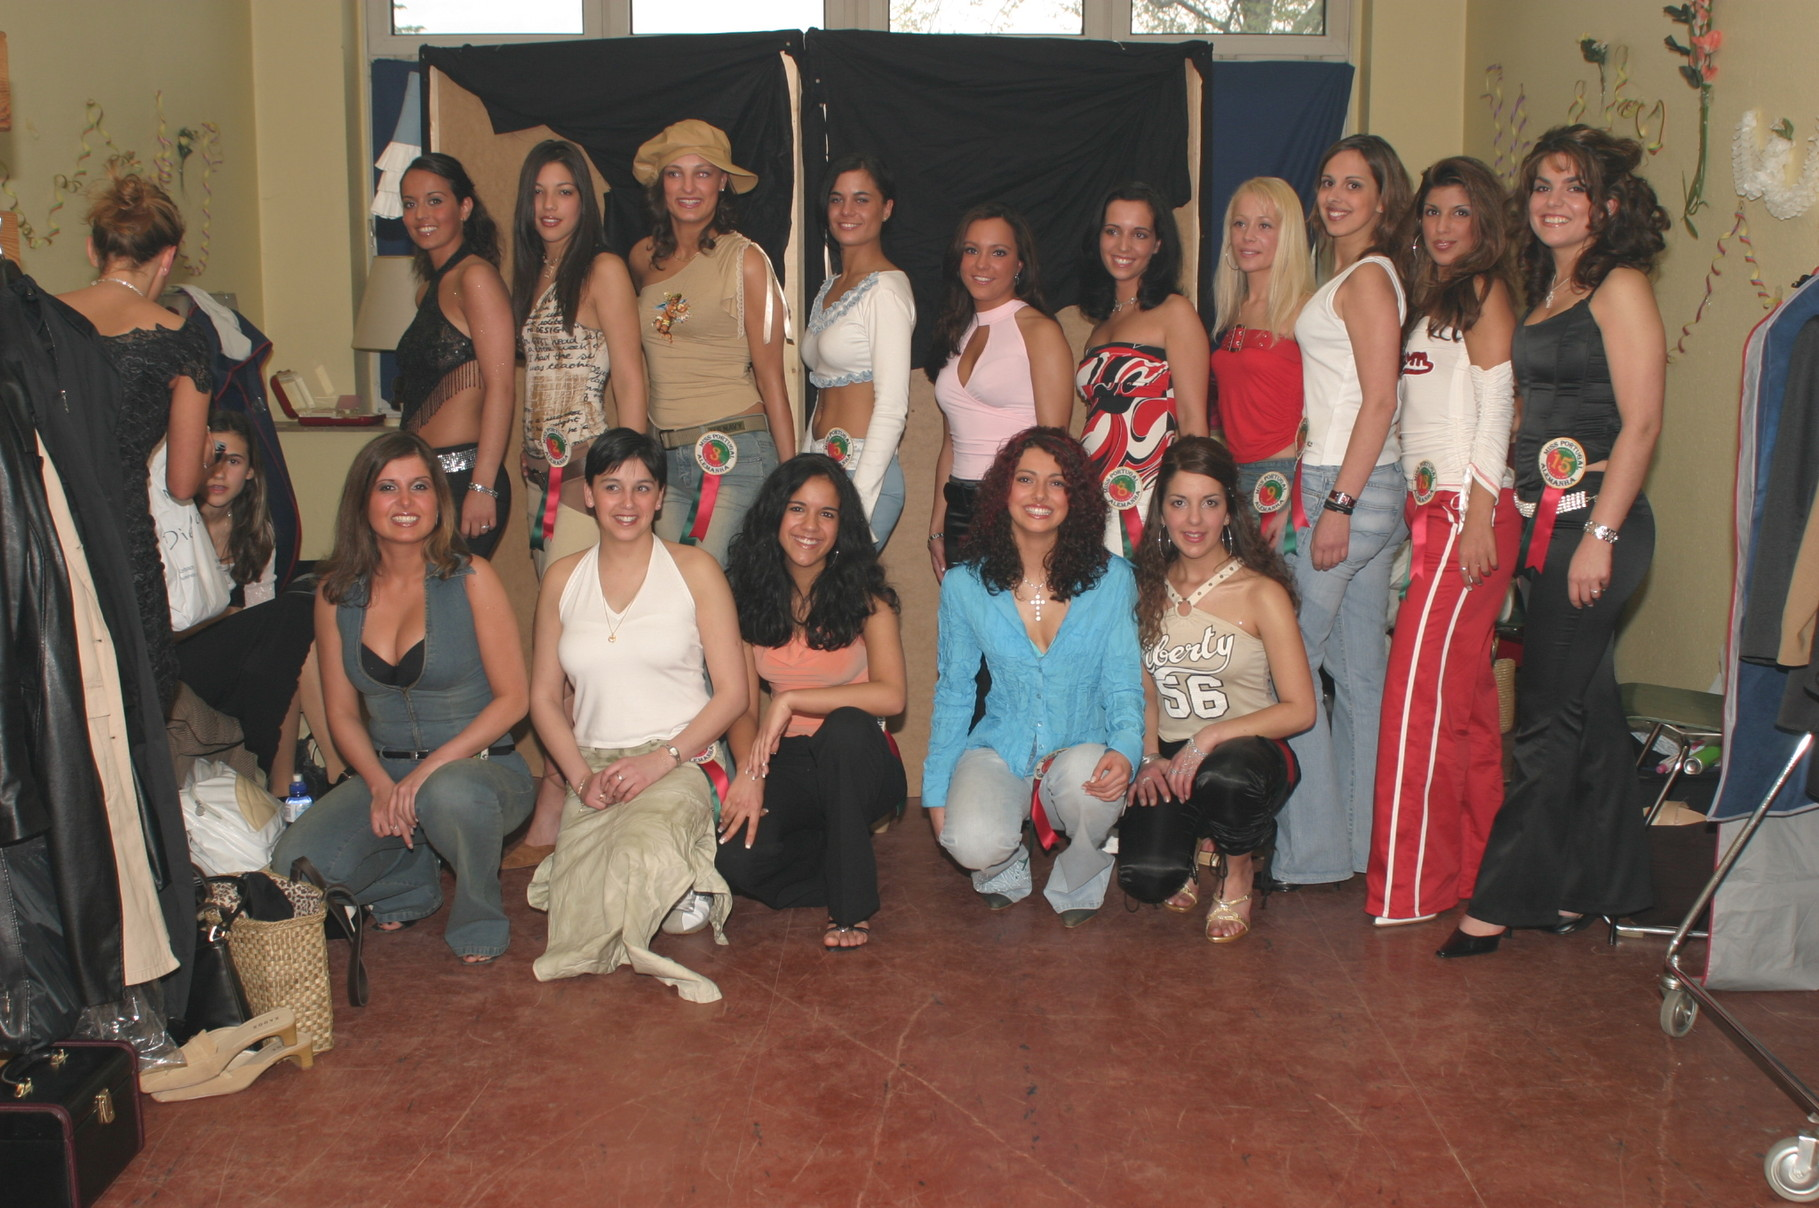 Candidatas à miss Portugal, 2003